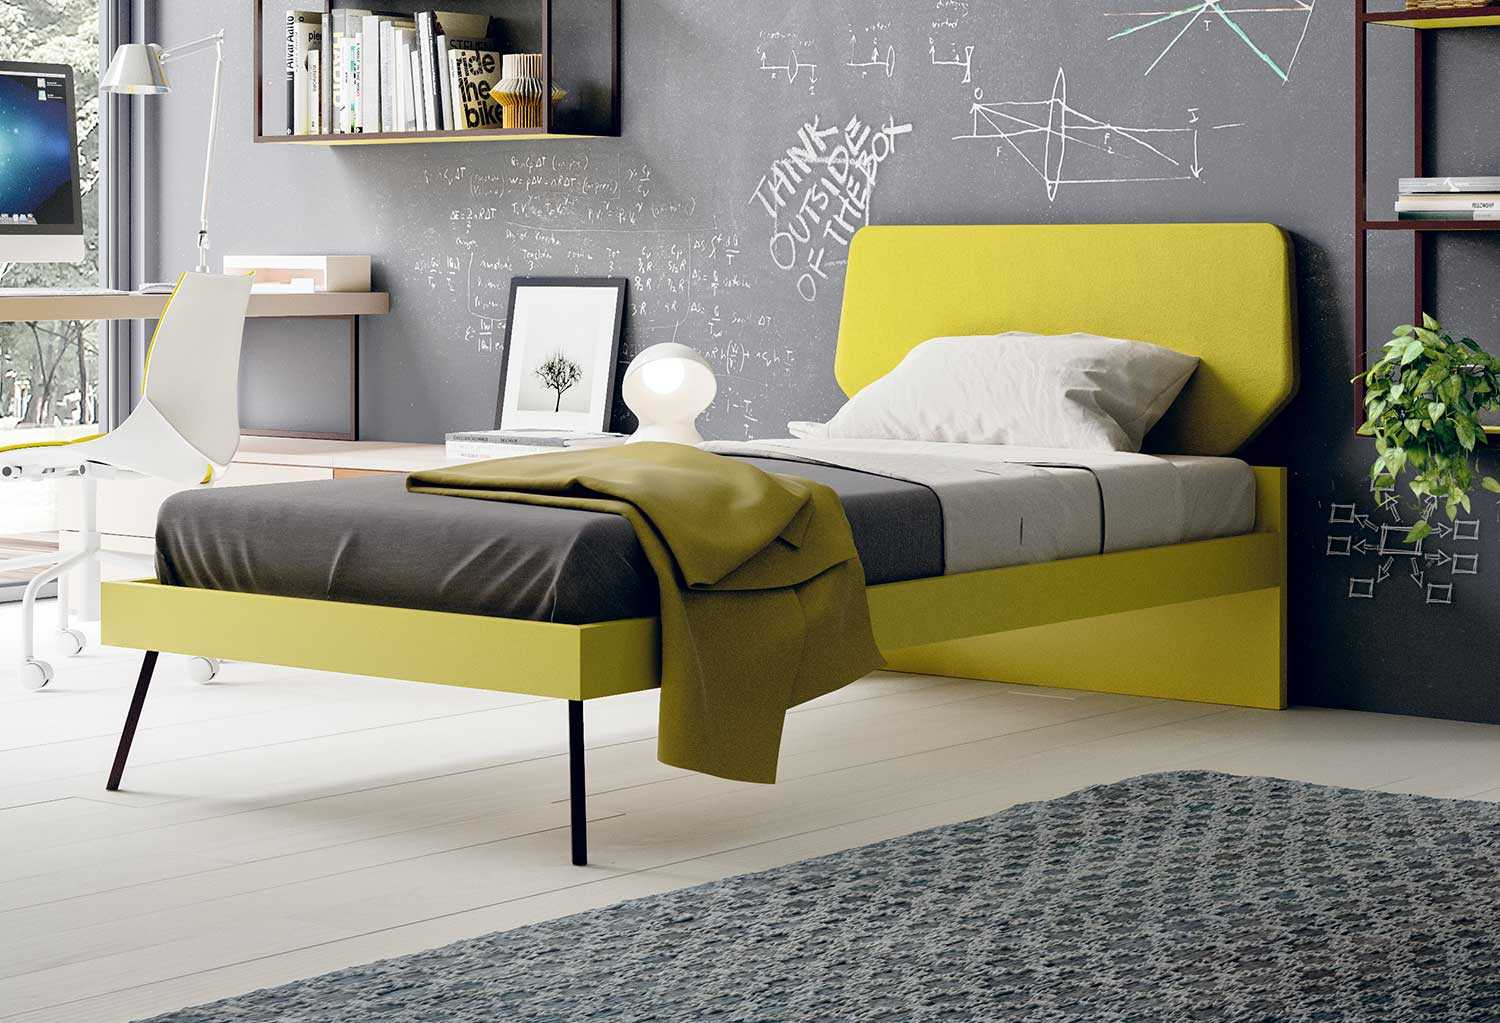 Letto Ecopelle Giallo : Slitta design single bed clever